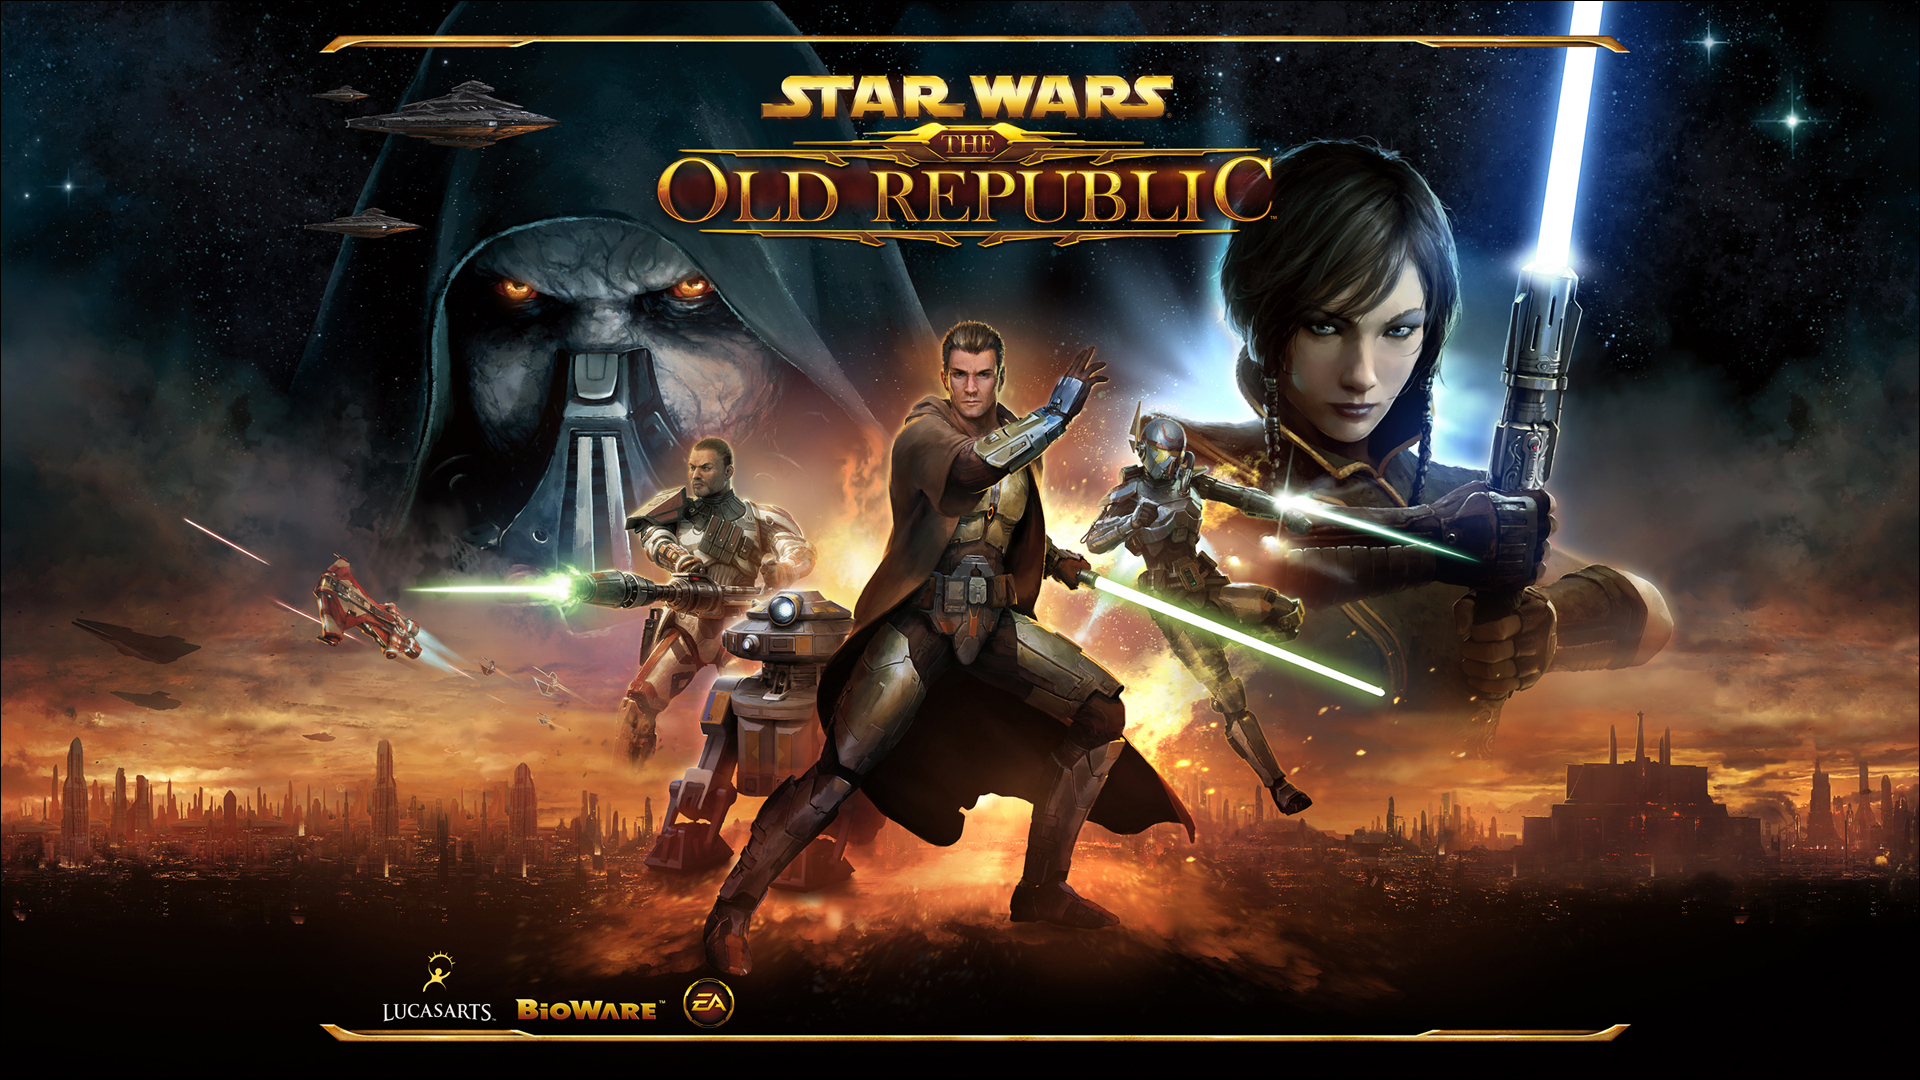 Star Wars The Old Republic to Play Impressions or is Just 1920x1080